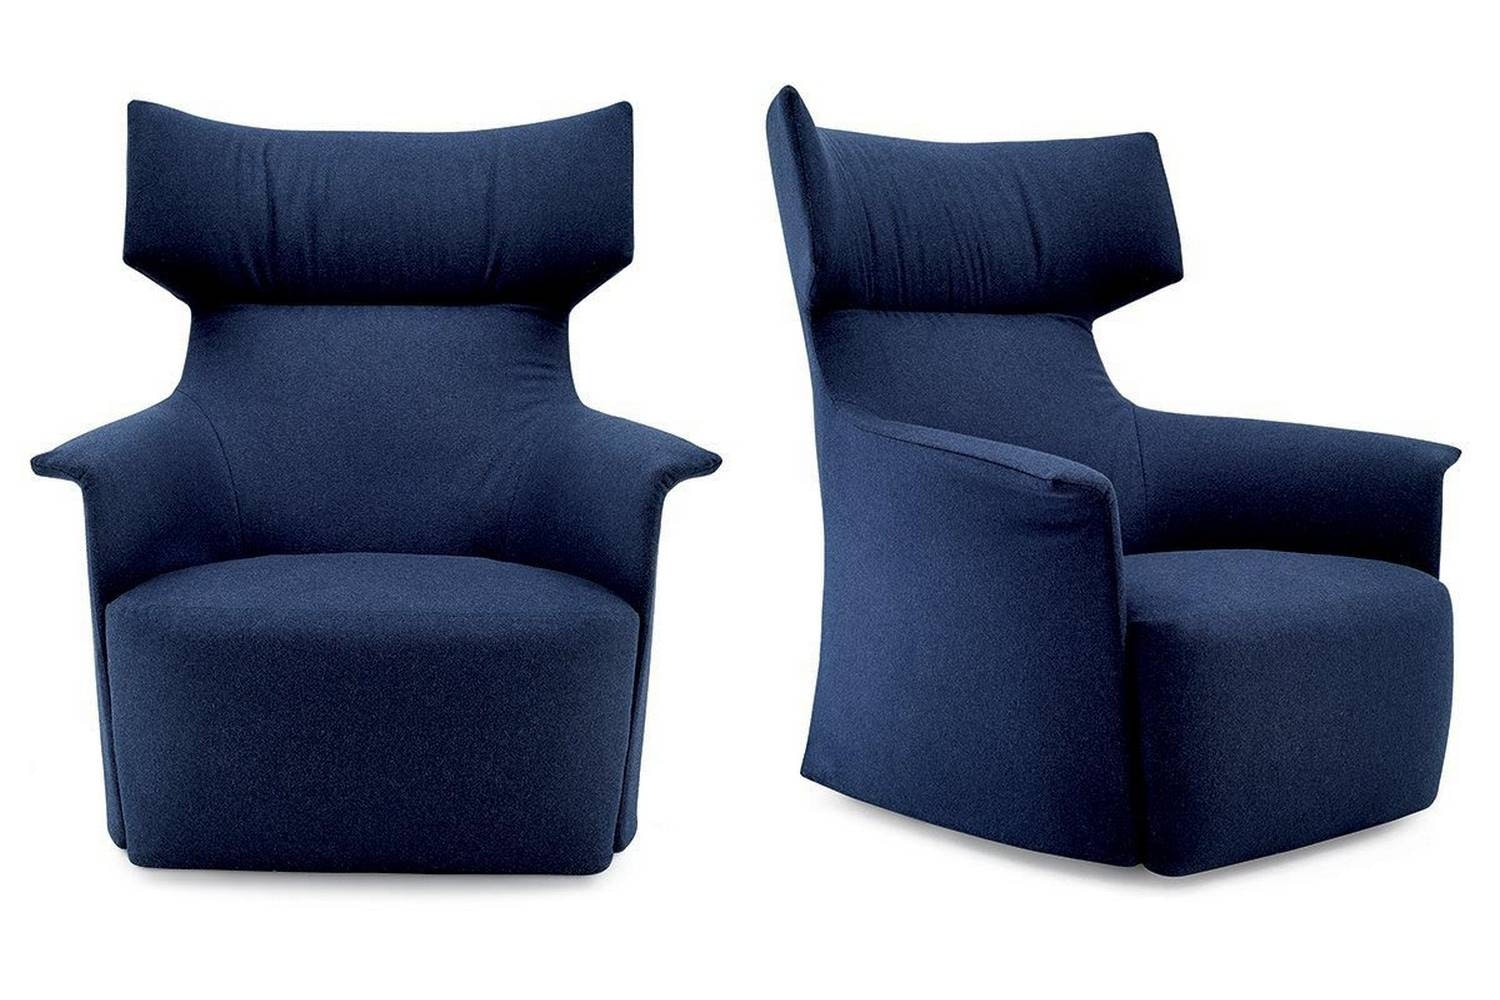 Santa Monica Home Armchair by J. M. Massaud for Poliform